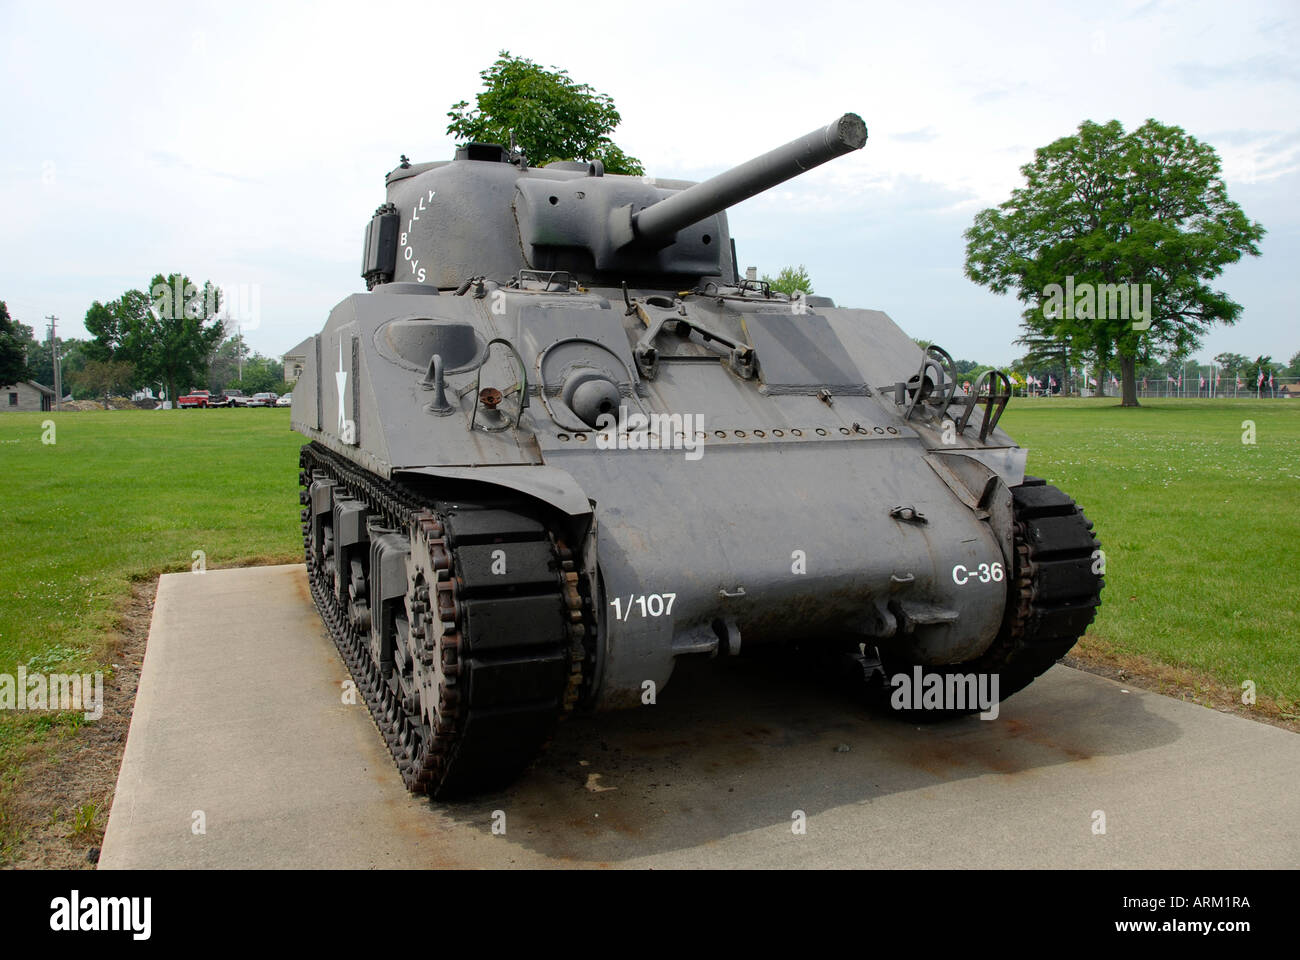 Mark I Sherman world war two military army tank located on the grounds of the Veterans Memorial Hospital at Sandusky - Stock Image